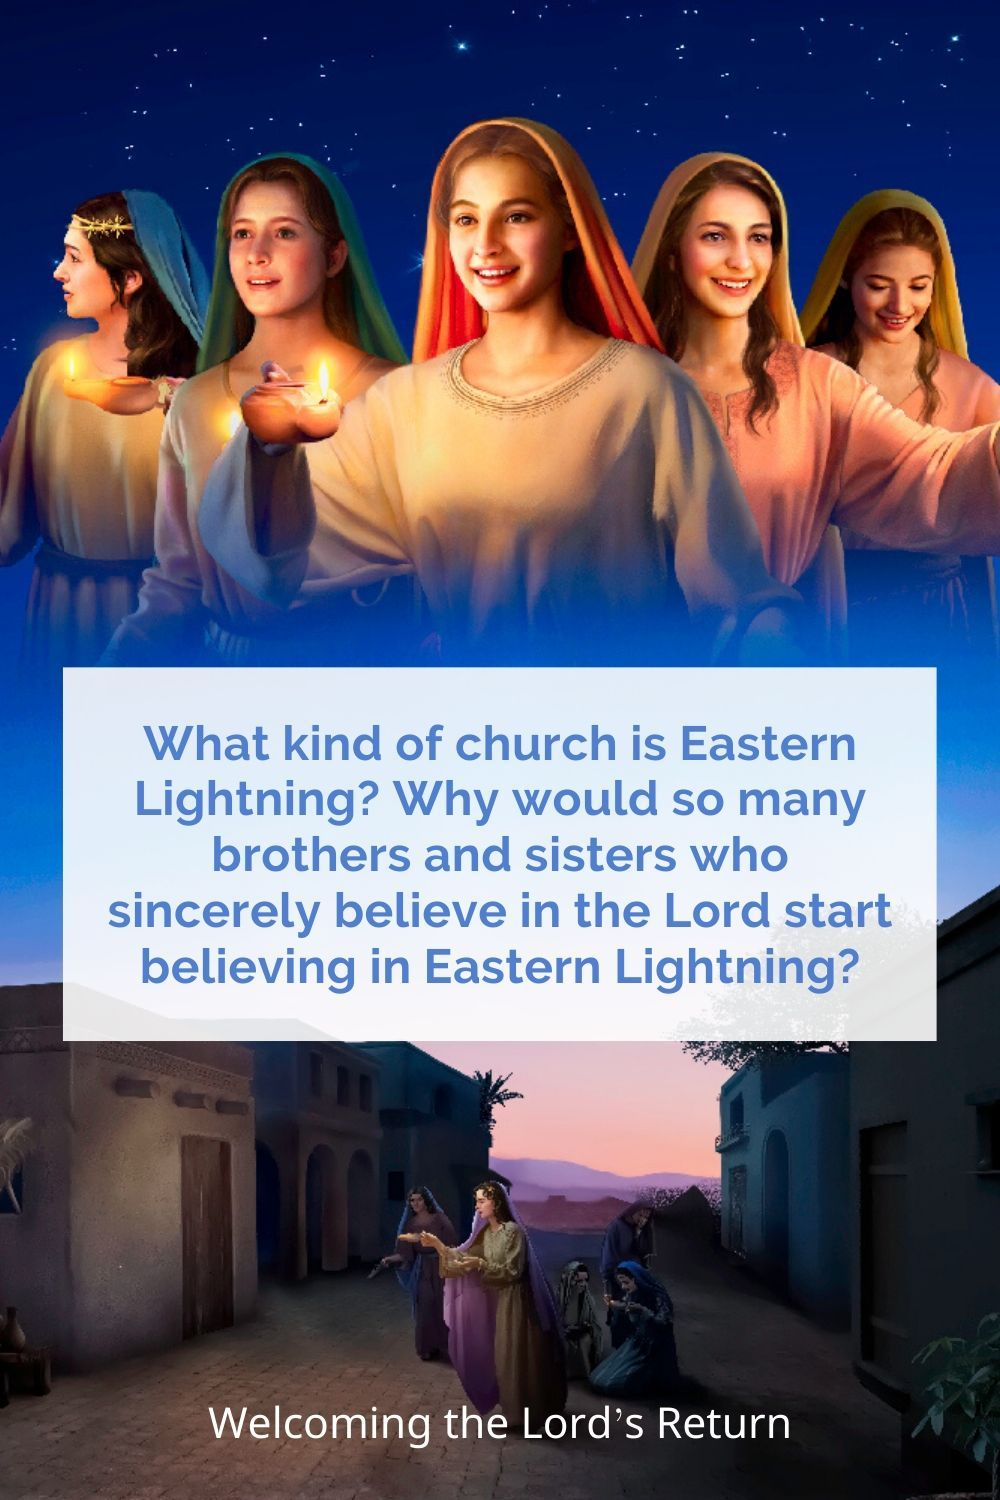 Studying Eastern Lightning and the Return of the